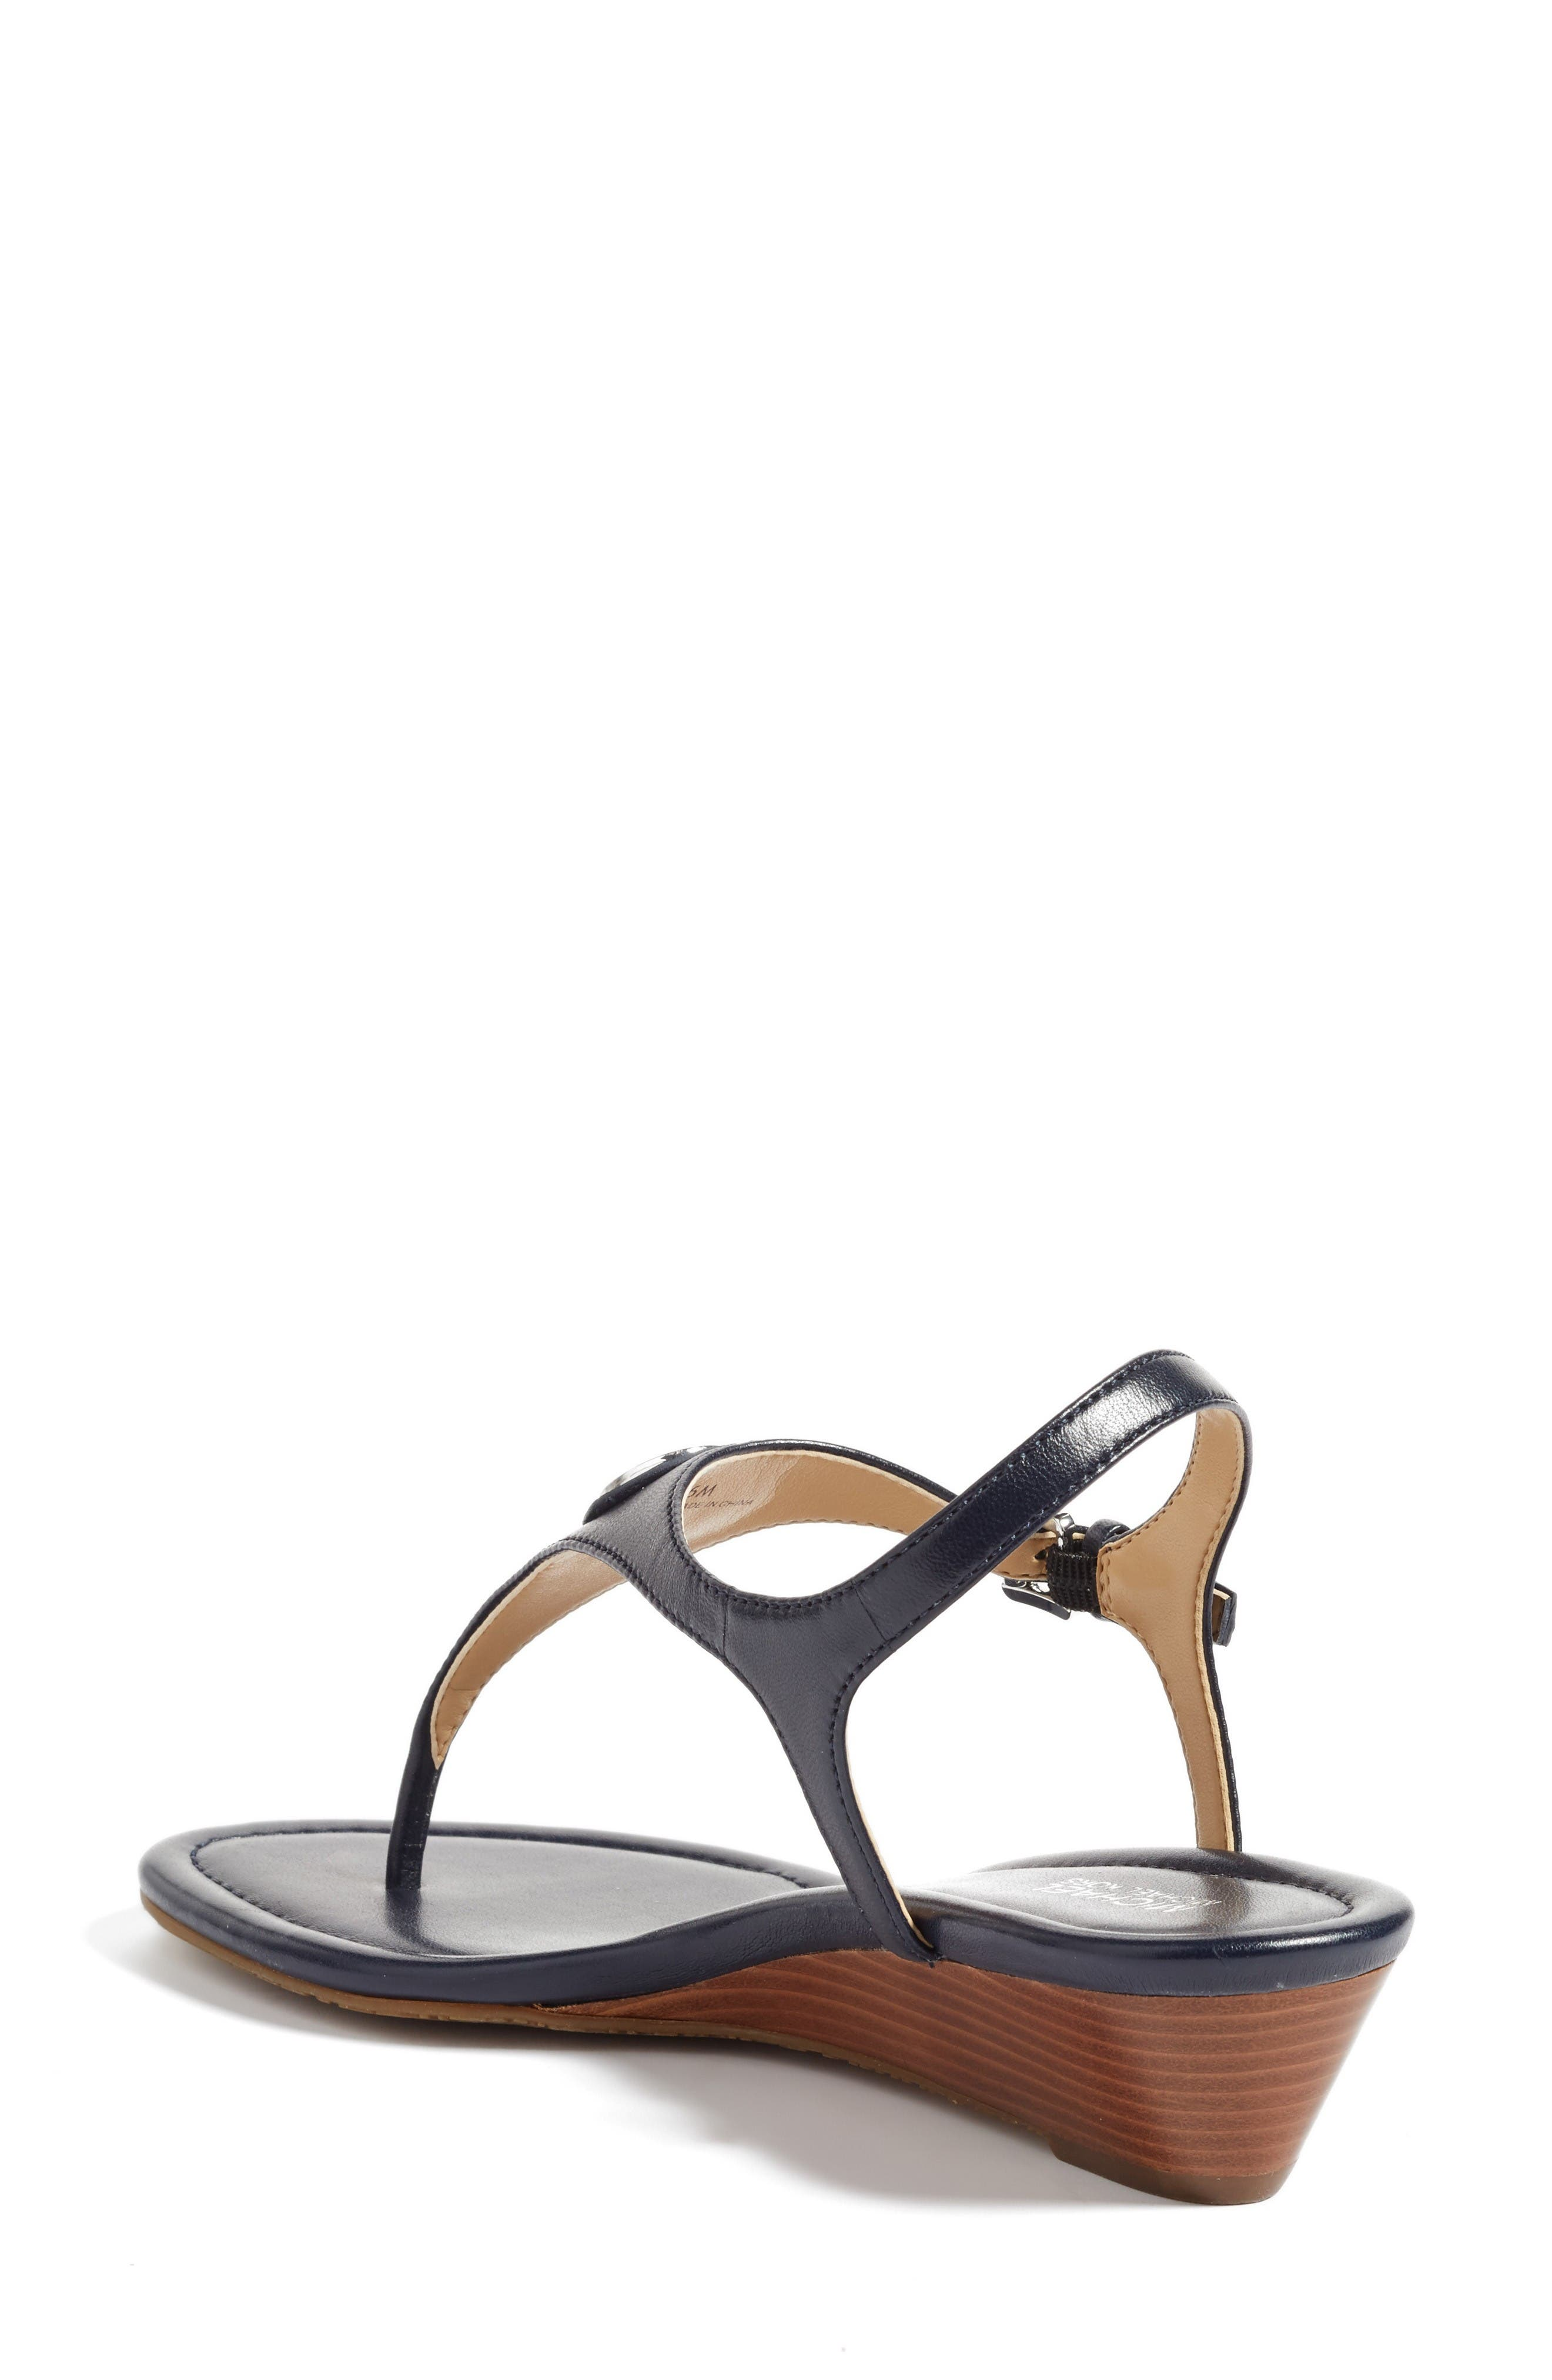 'Ramona' Wedge Sandal,                             Alternate thumbnail 2, color,                             Admiral Nappa Leather